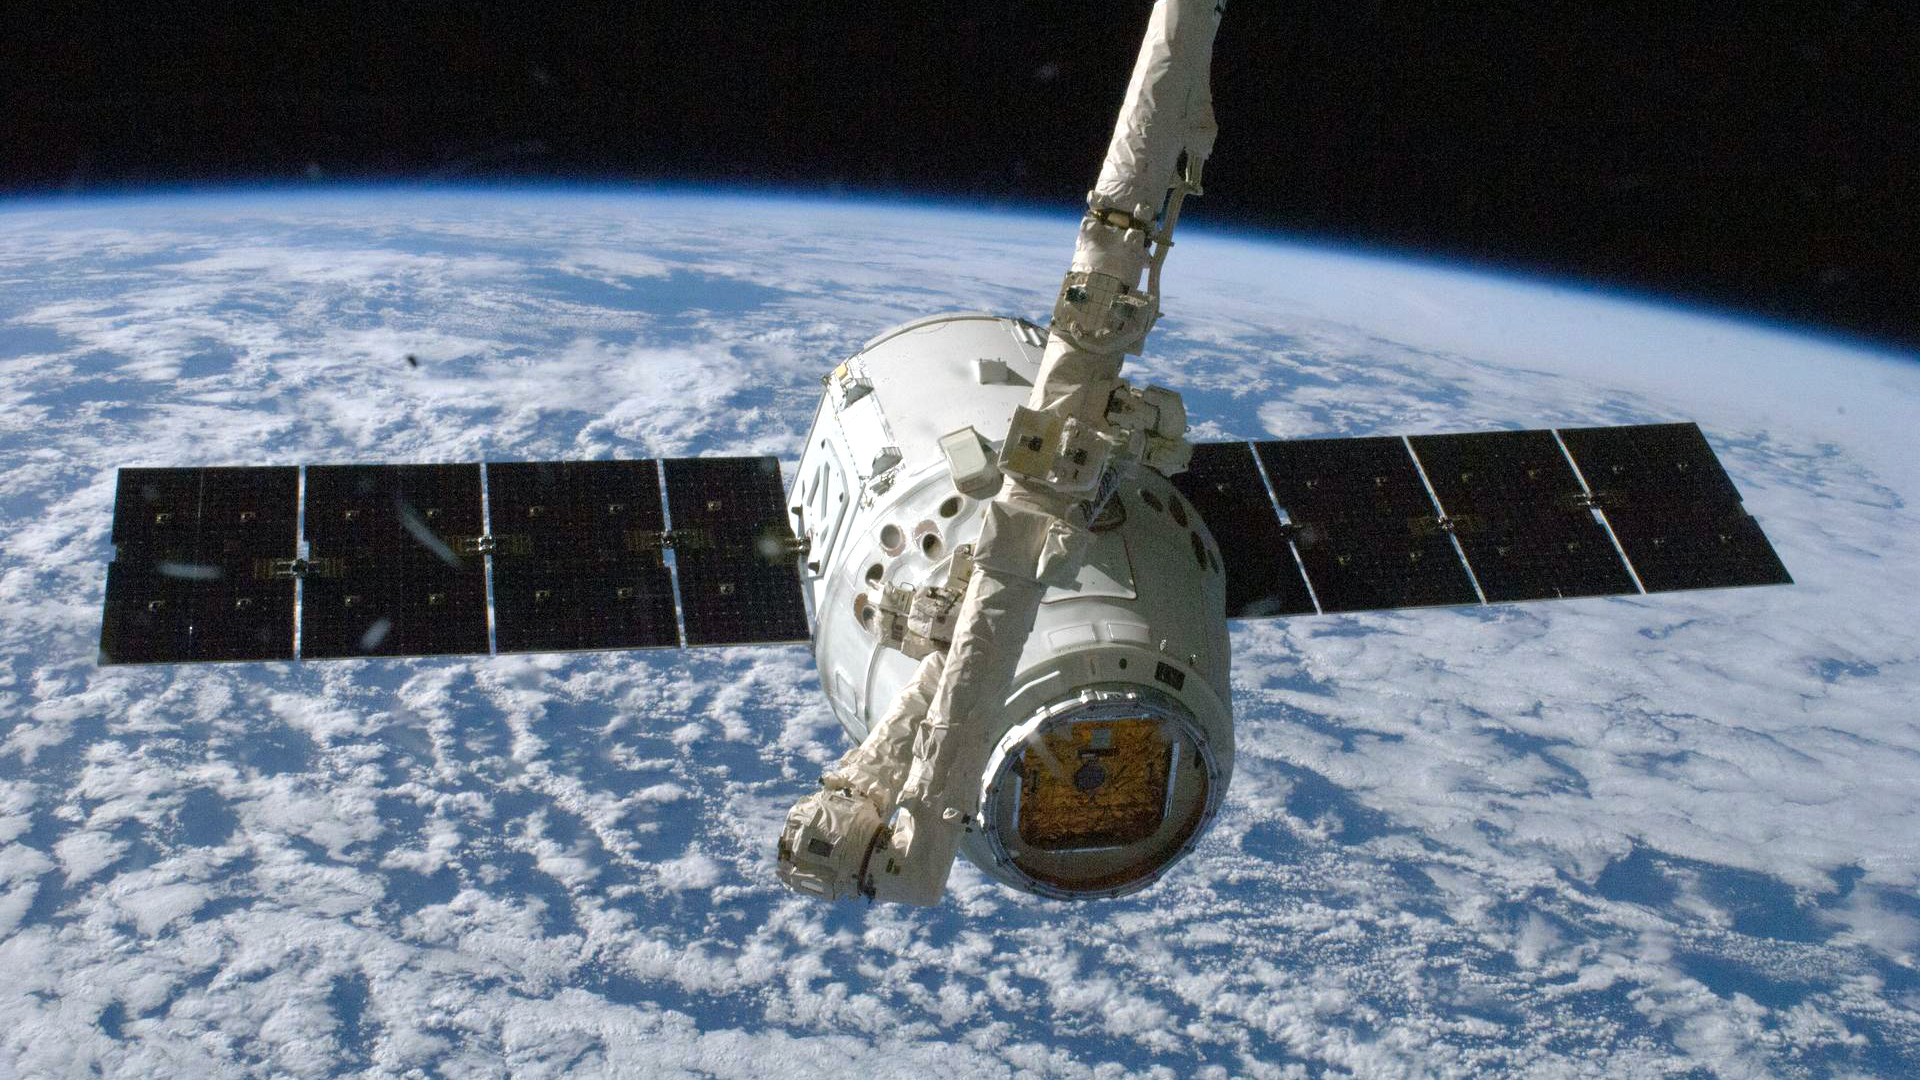 SpaceX Planning 15th Resupply Mission to ISS